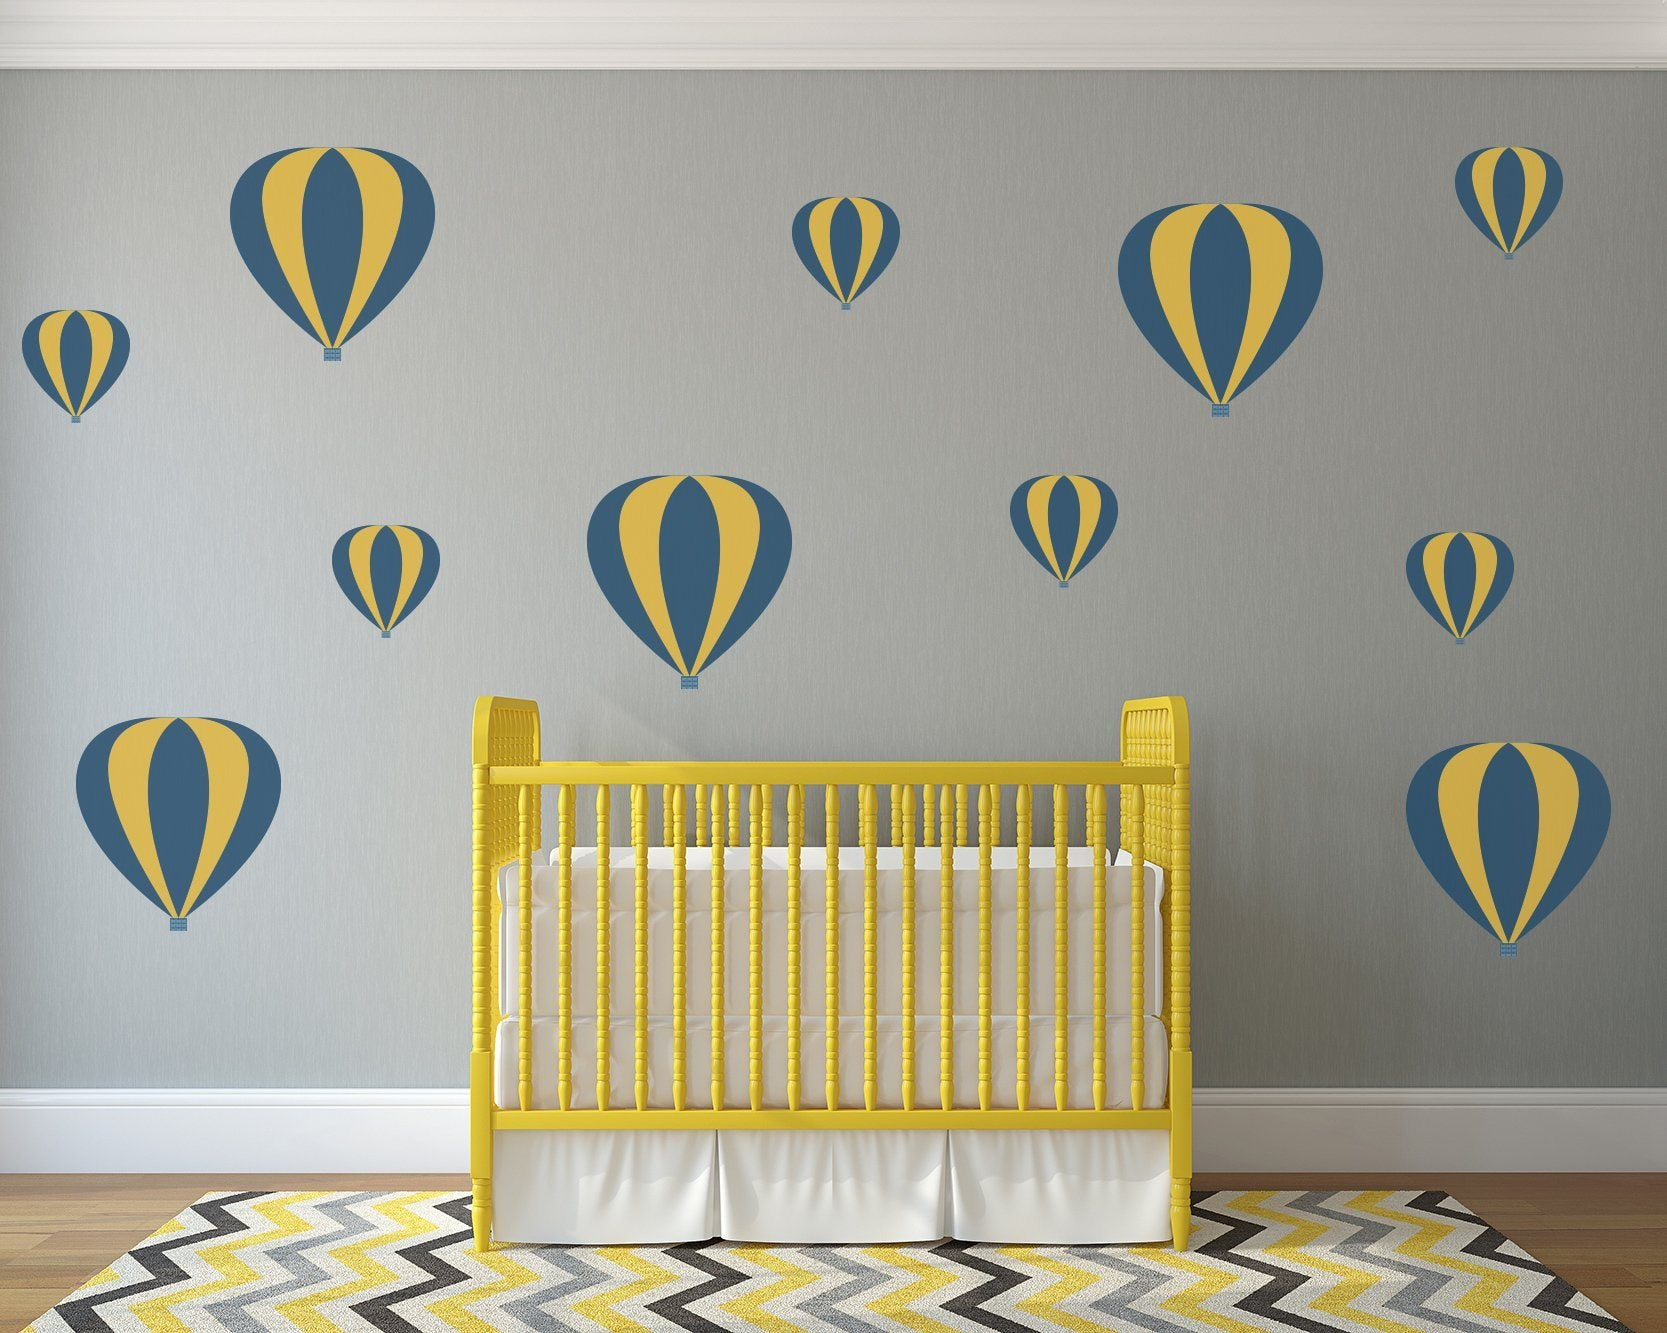 Striped Hot Air Balloons Nursery Wall Art - Vinyl Wall Decals For ...